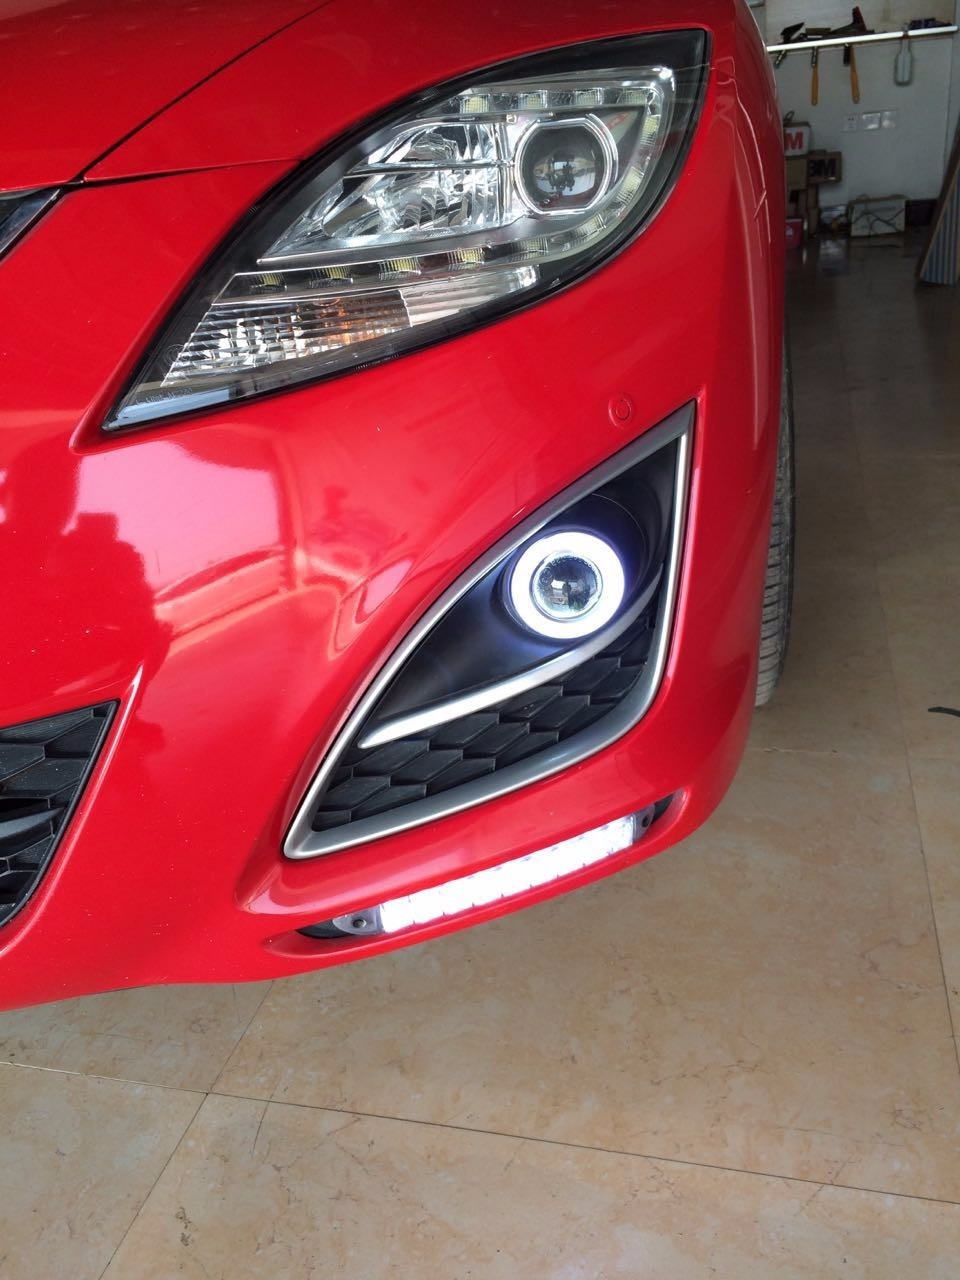 Qirun led daytime running light DRL for Mazda 6 Atenza 2010-2013 (GH) 2 generation, with moving yellow turn signal qirun led drl daytime running light for citroen c3 xr 2015 2016 with yellow turn signal and wireless control